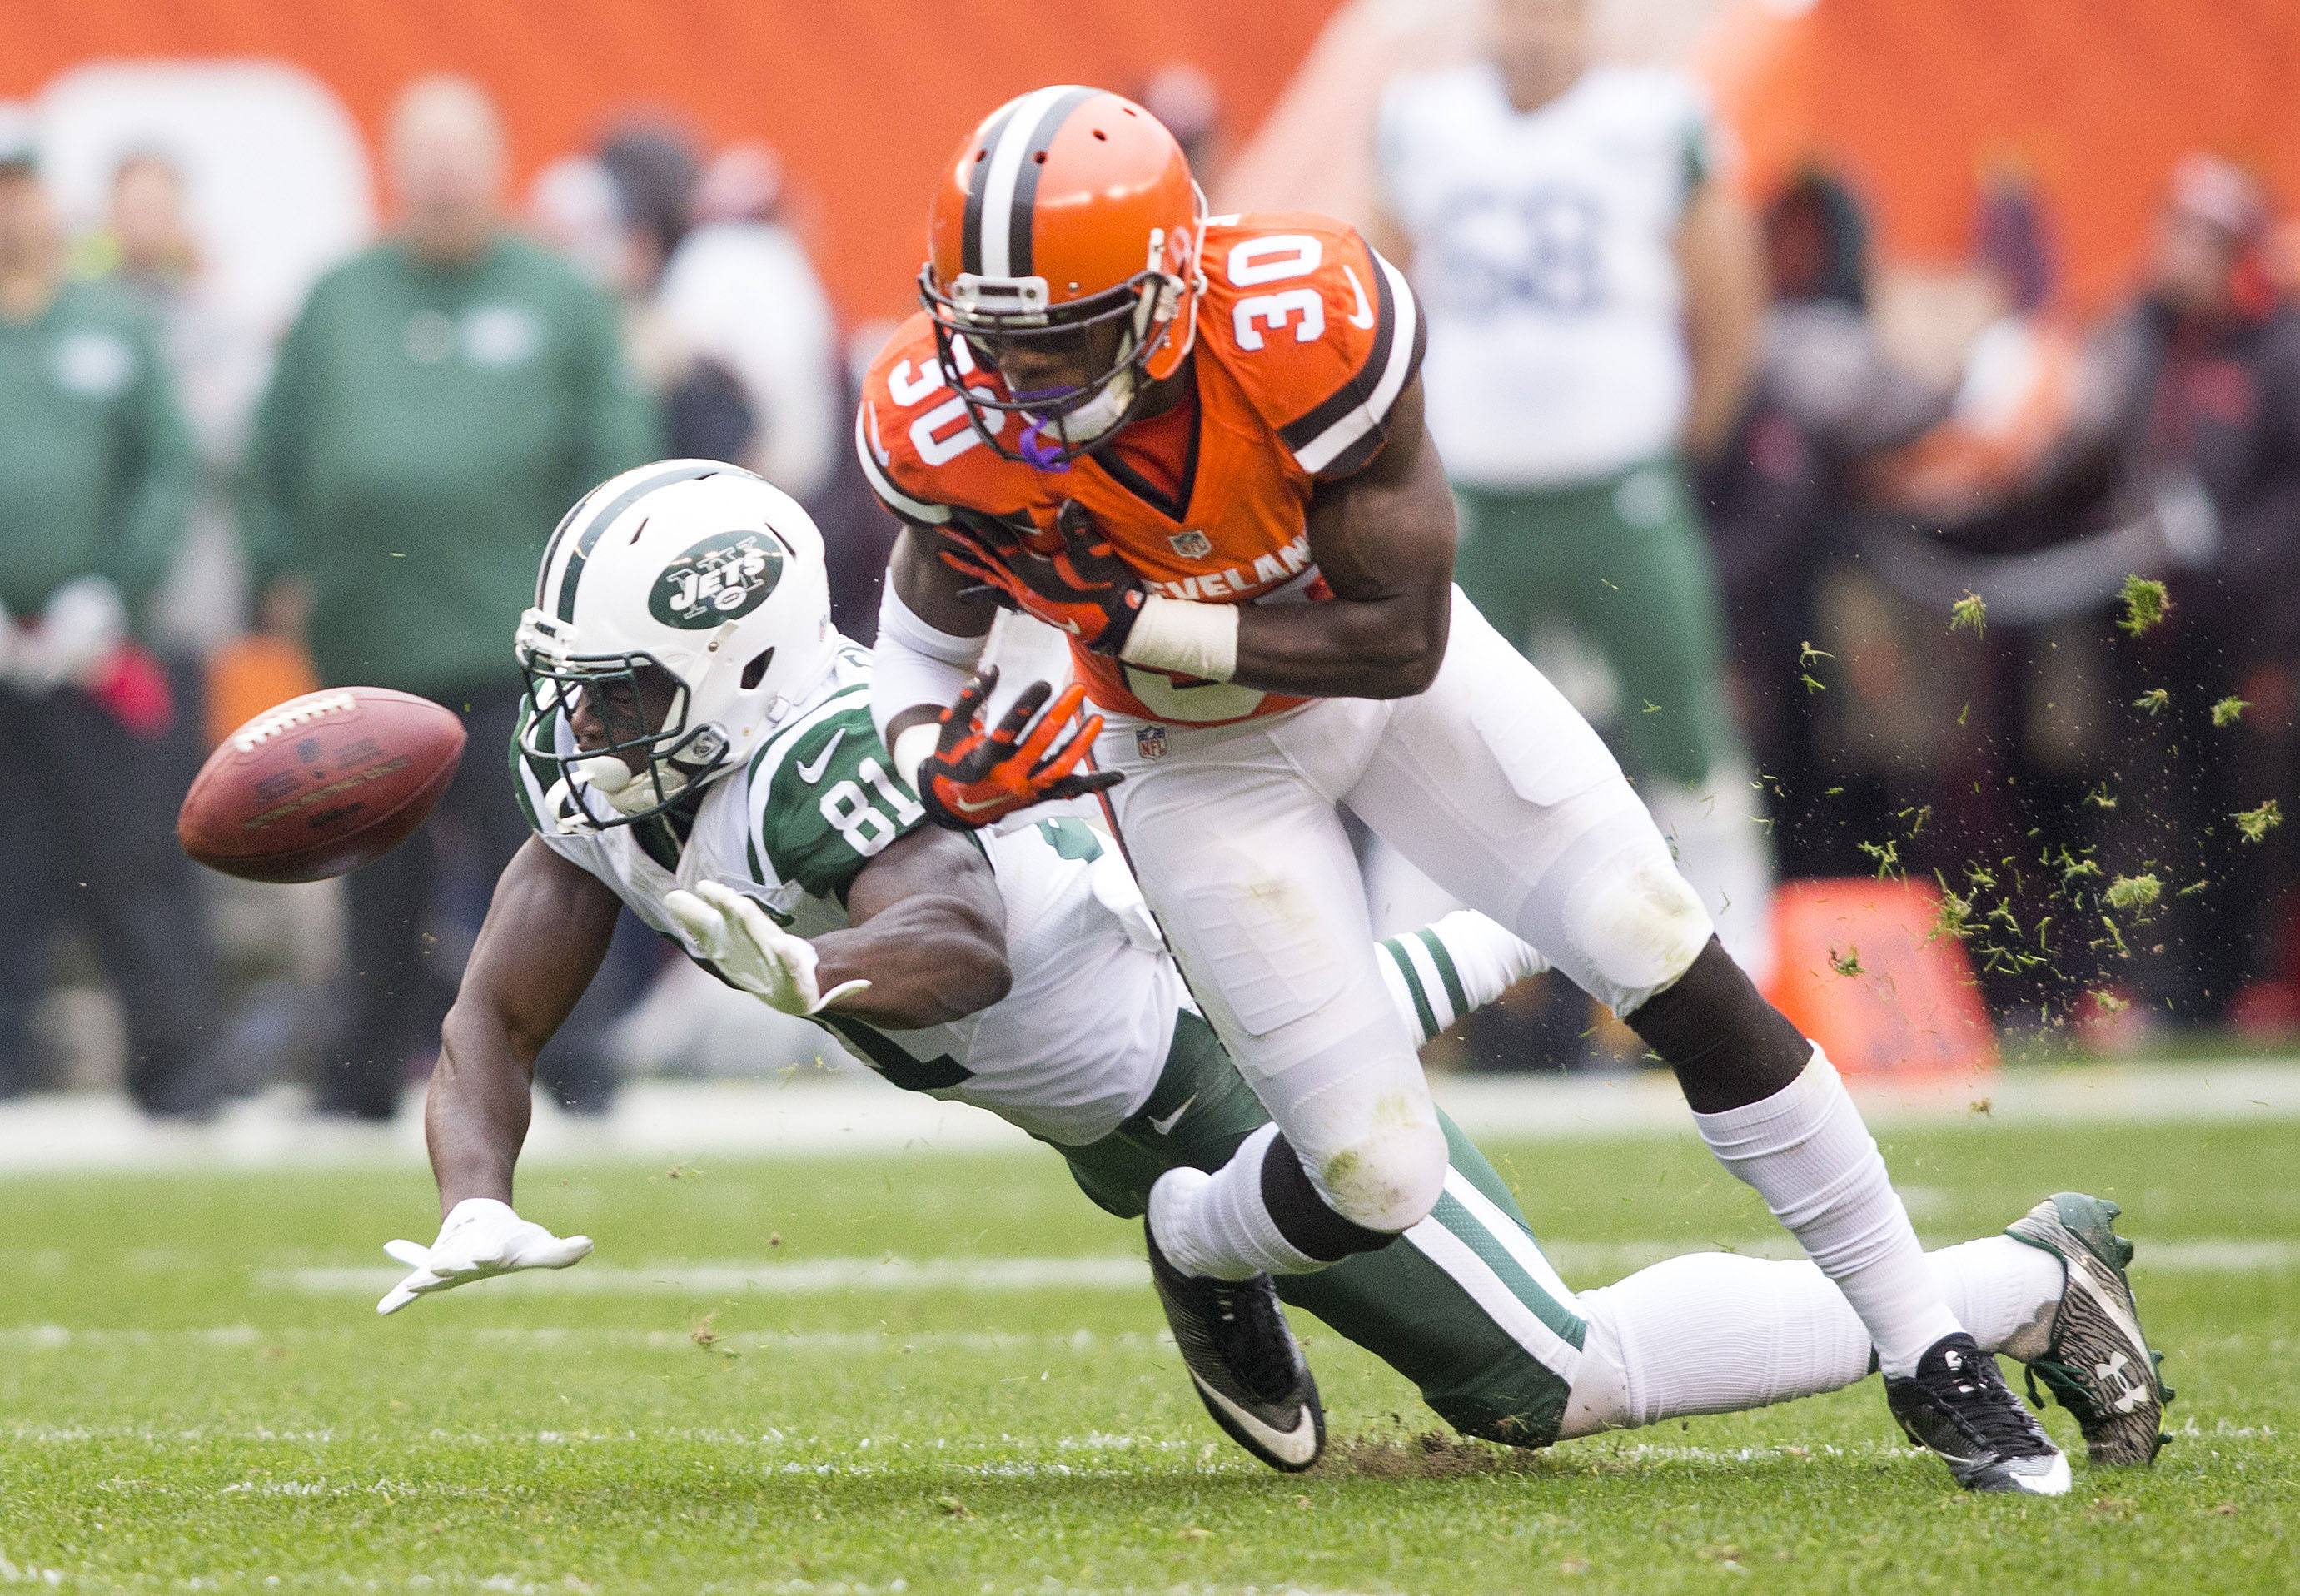 9643212-nfl-new-york-jets-at-cleveland-browns